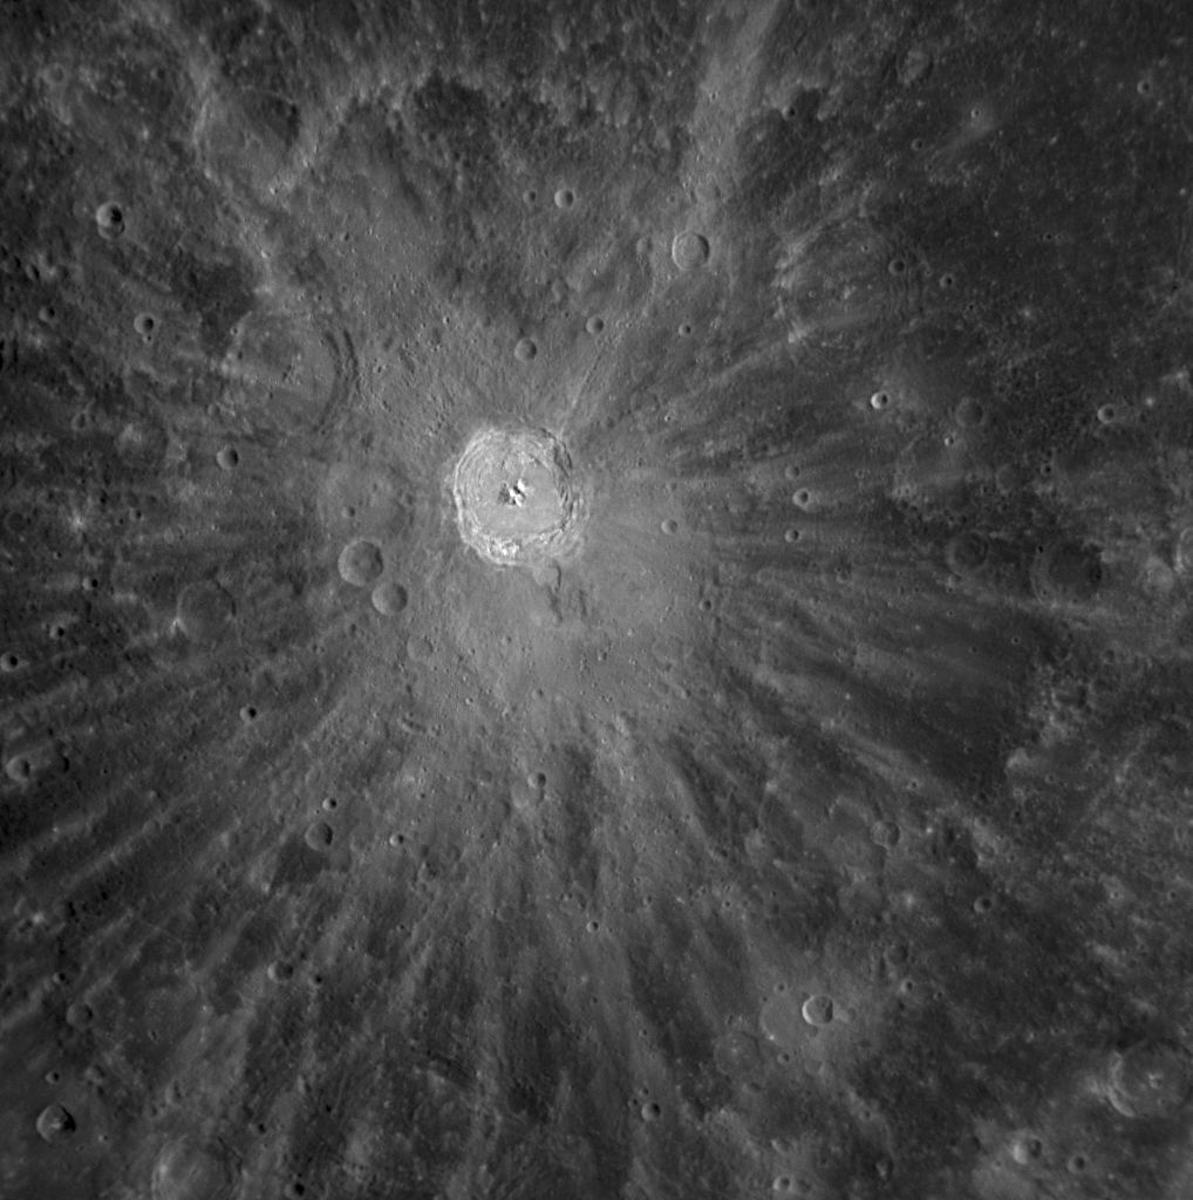 Rays of Ejected Material emanating from the Kuiper Crater on Mercury